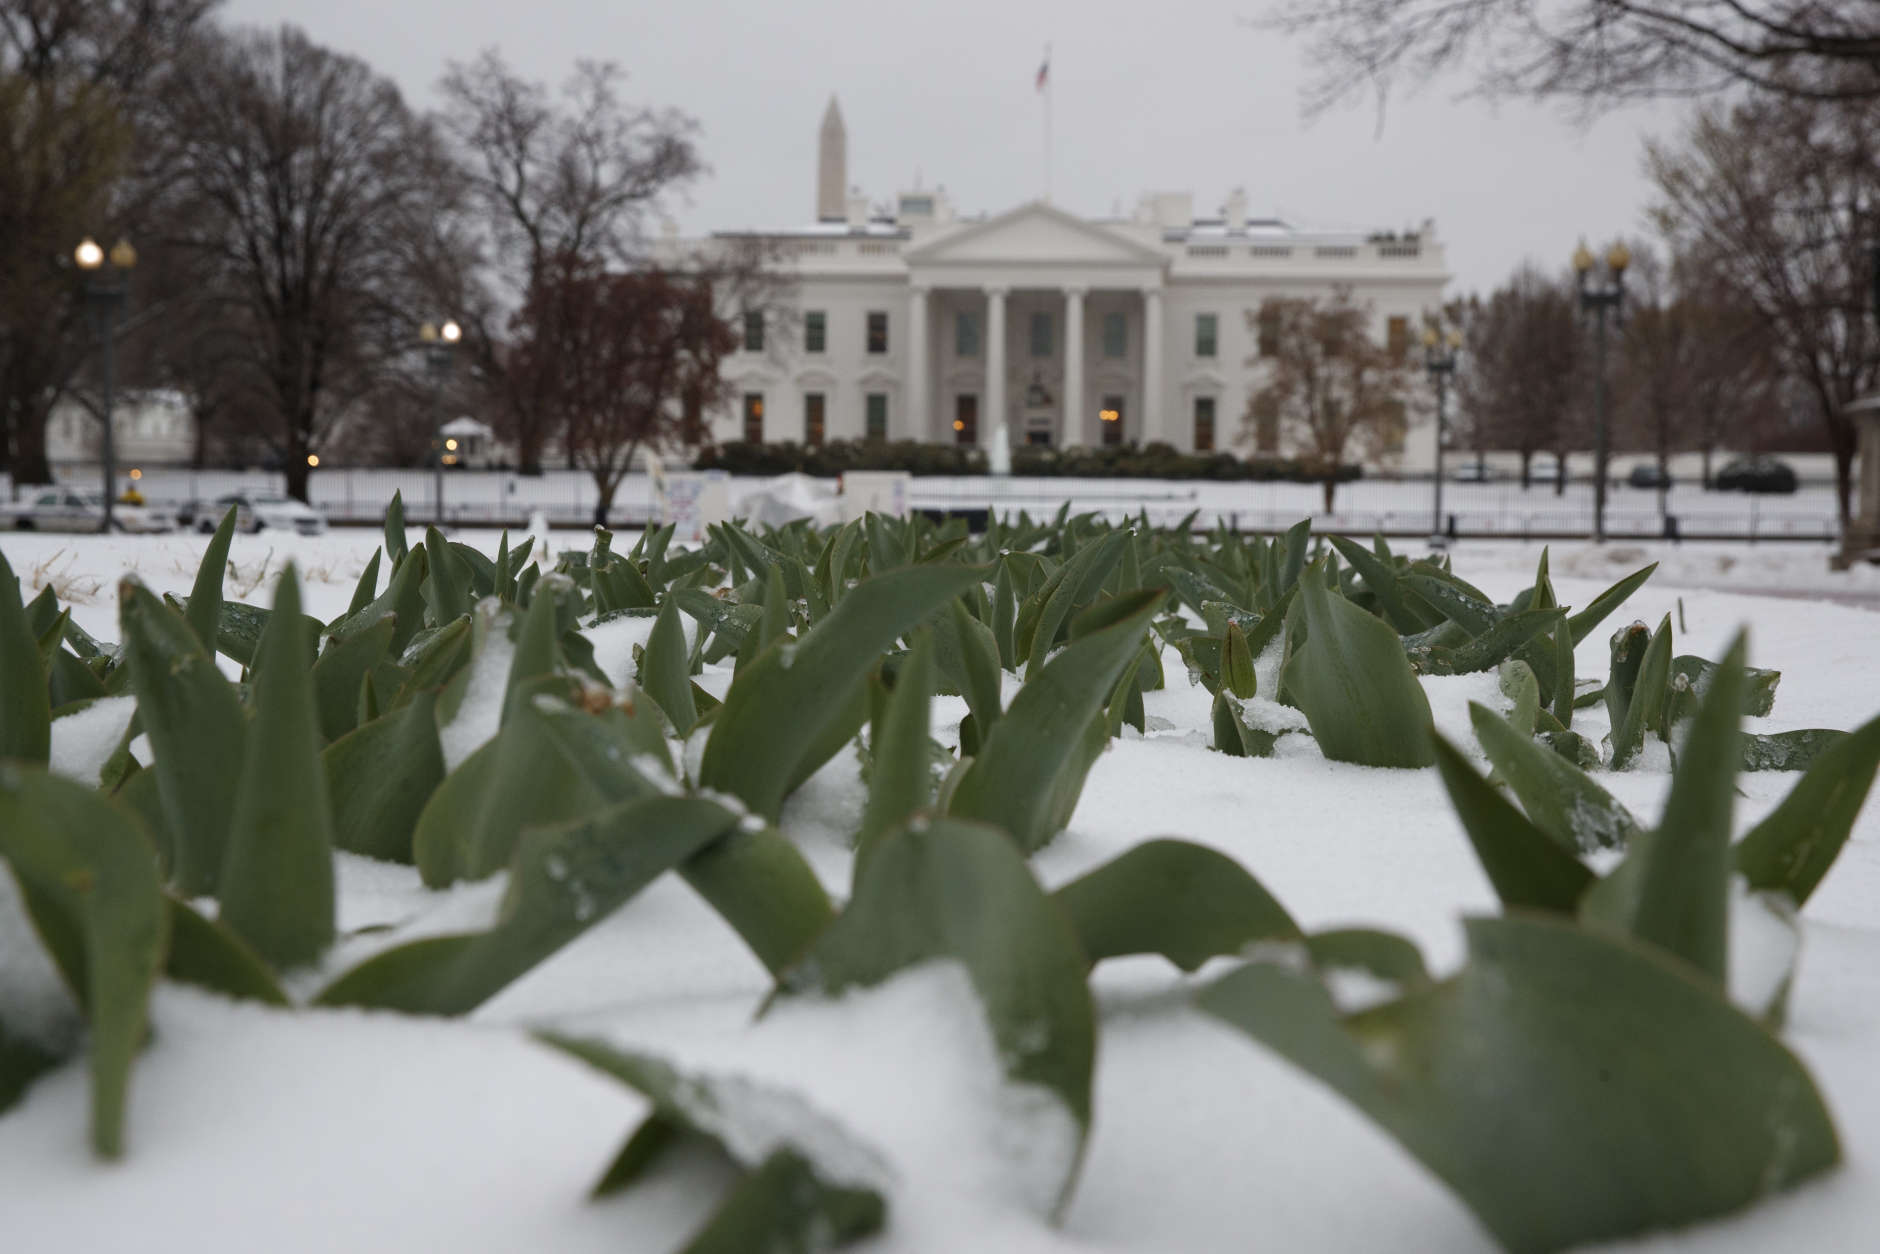 Snow covers the ground in Lafayette Park across from the White House in Washington, Tuesday, March 14, 2017. A late-season storm is dumping a messy mix of snow, sleet and rain on the mid-Atlantic, complicating travel, knocking out power and closing schools and government offices around the region. (AP Photo/Evan Vucci)